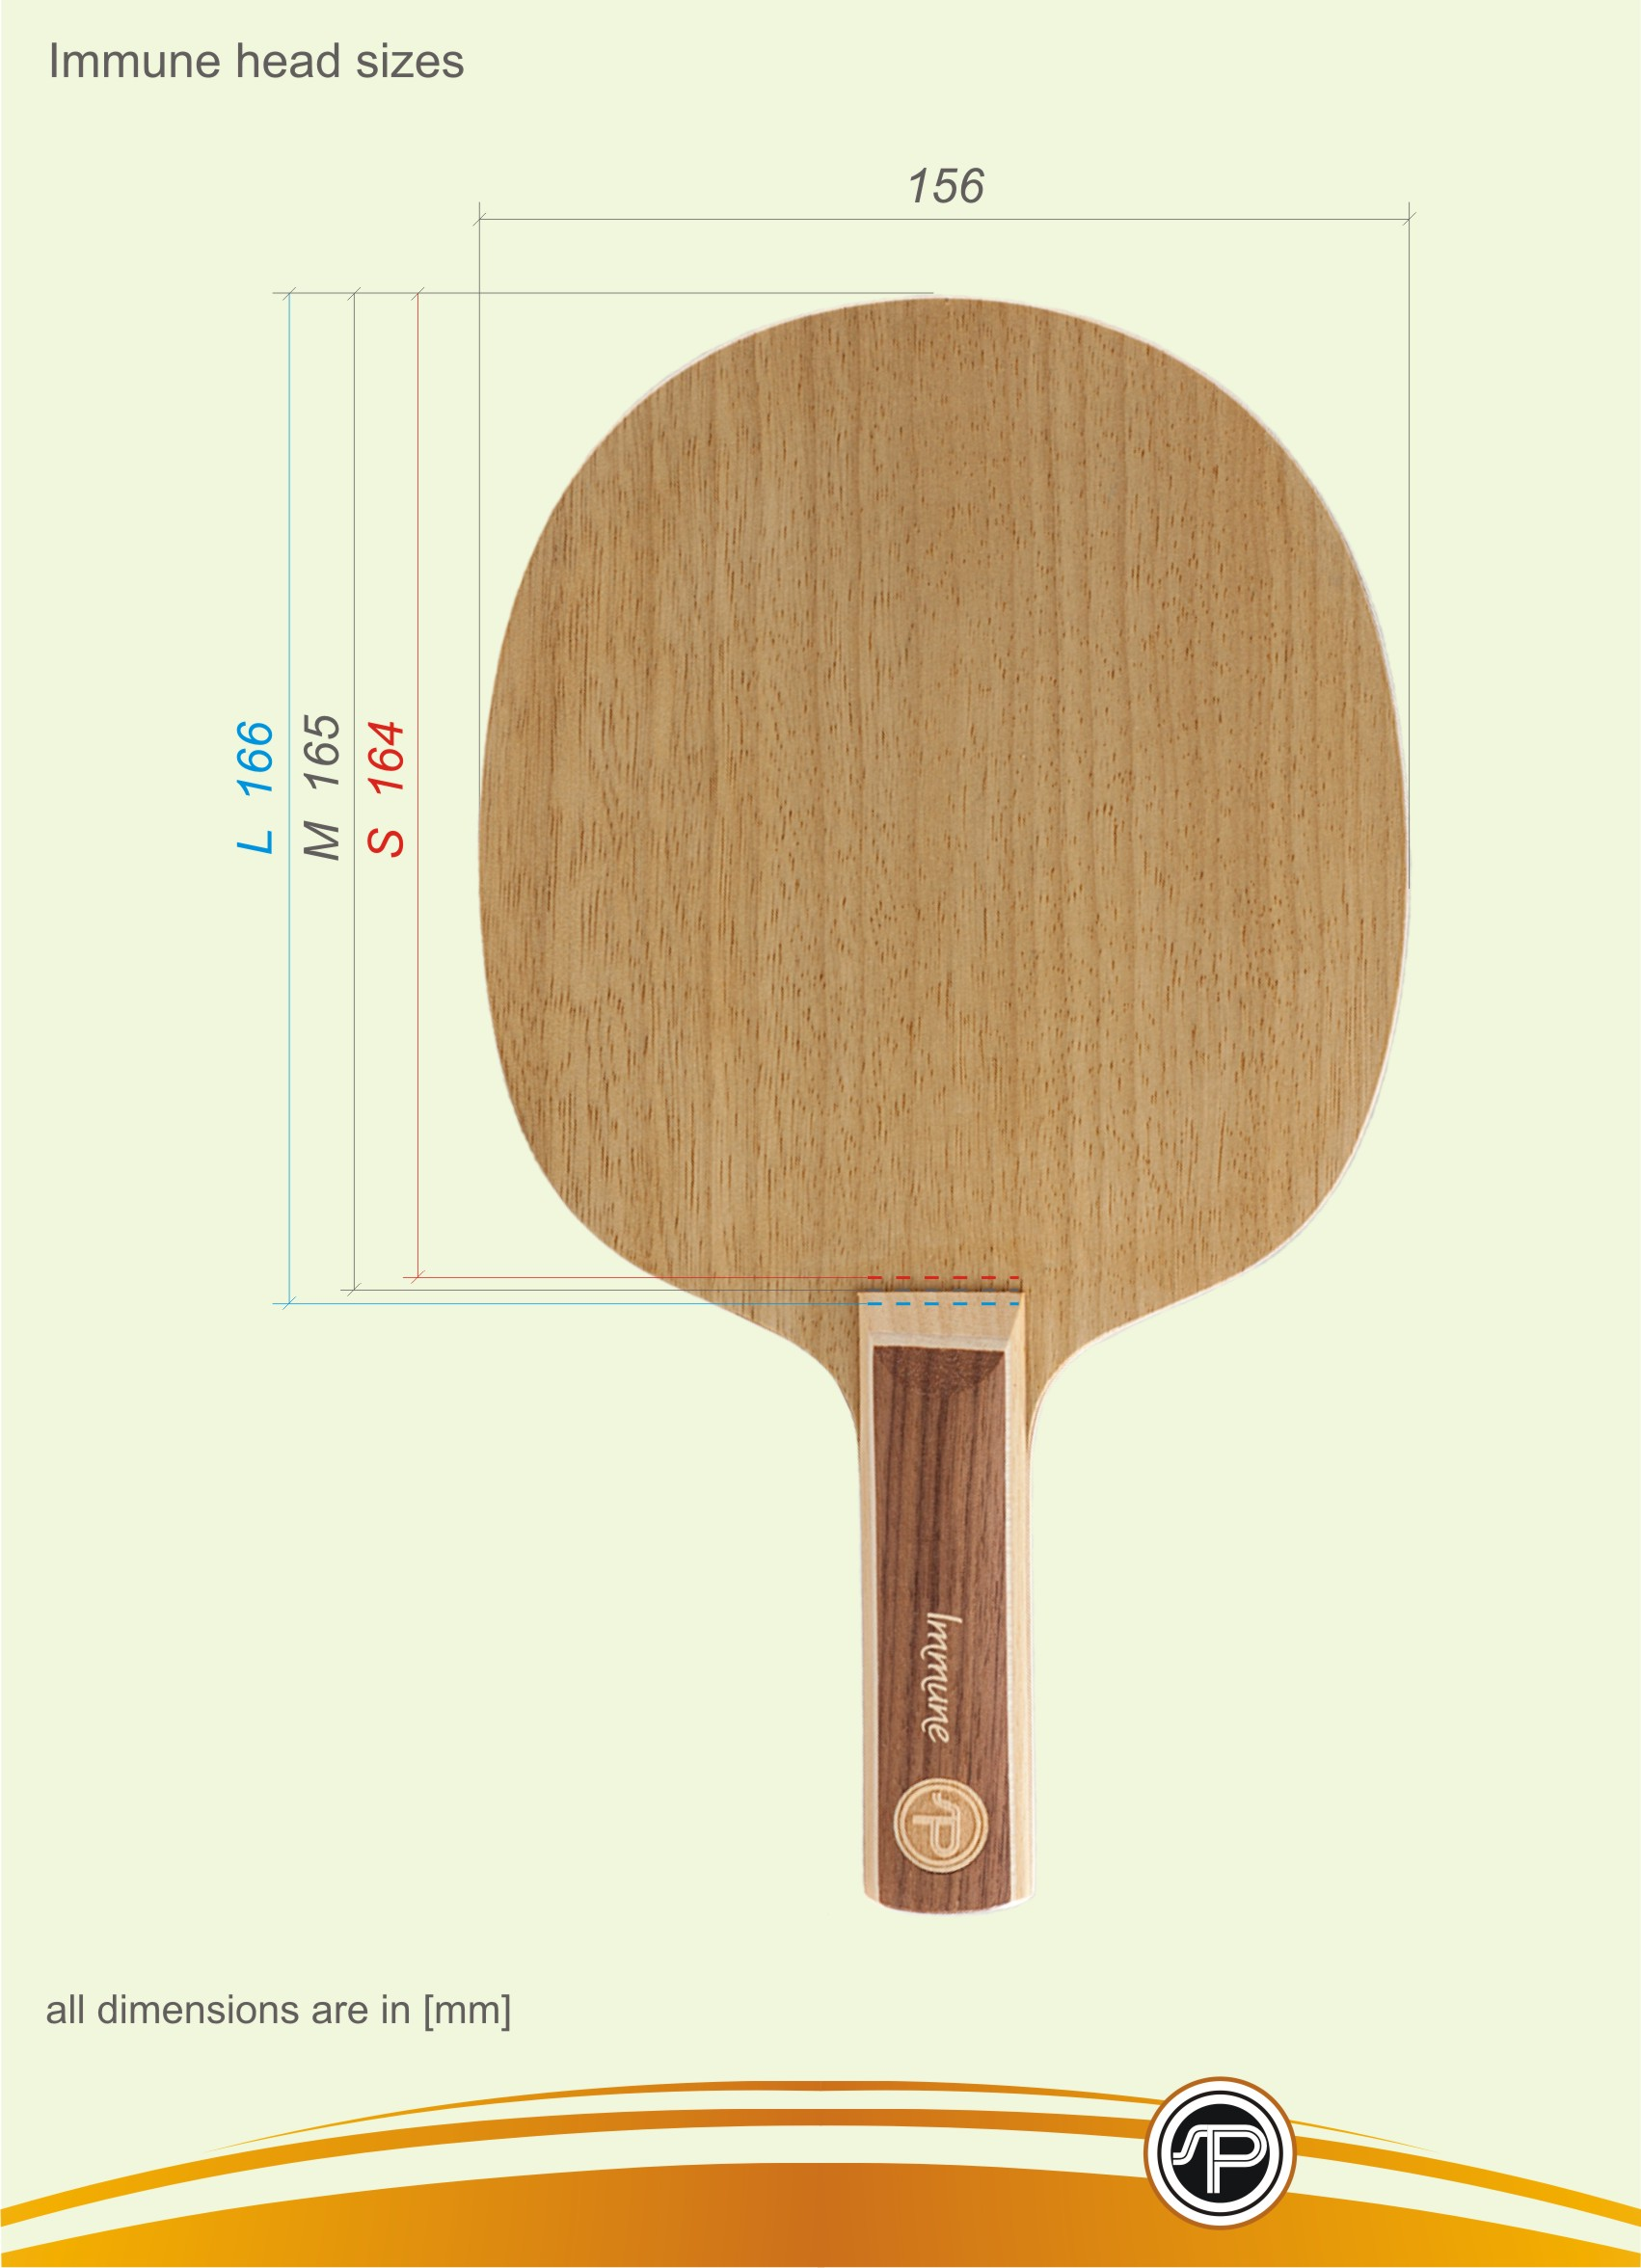 Premium Handmade Table Tennis Blades Table Tennis Blades